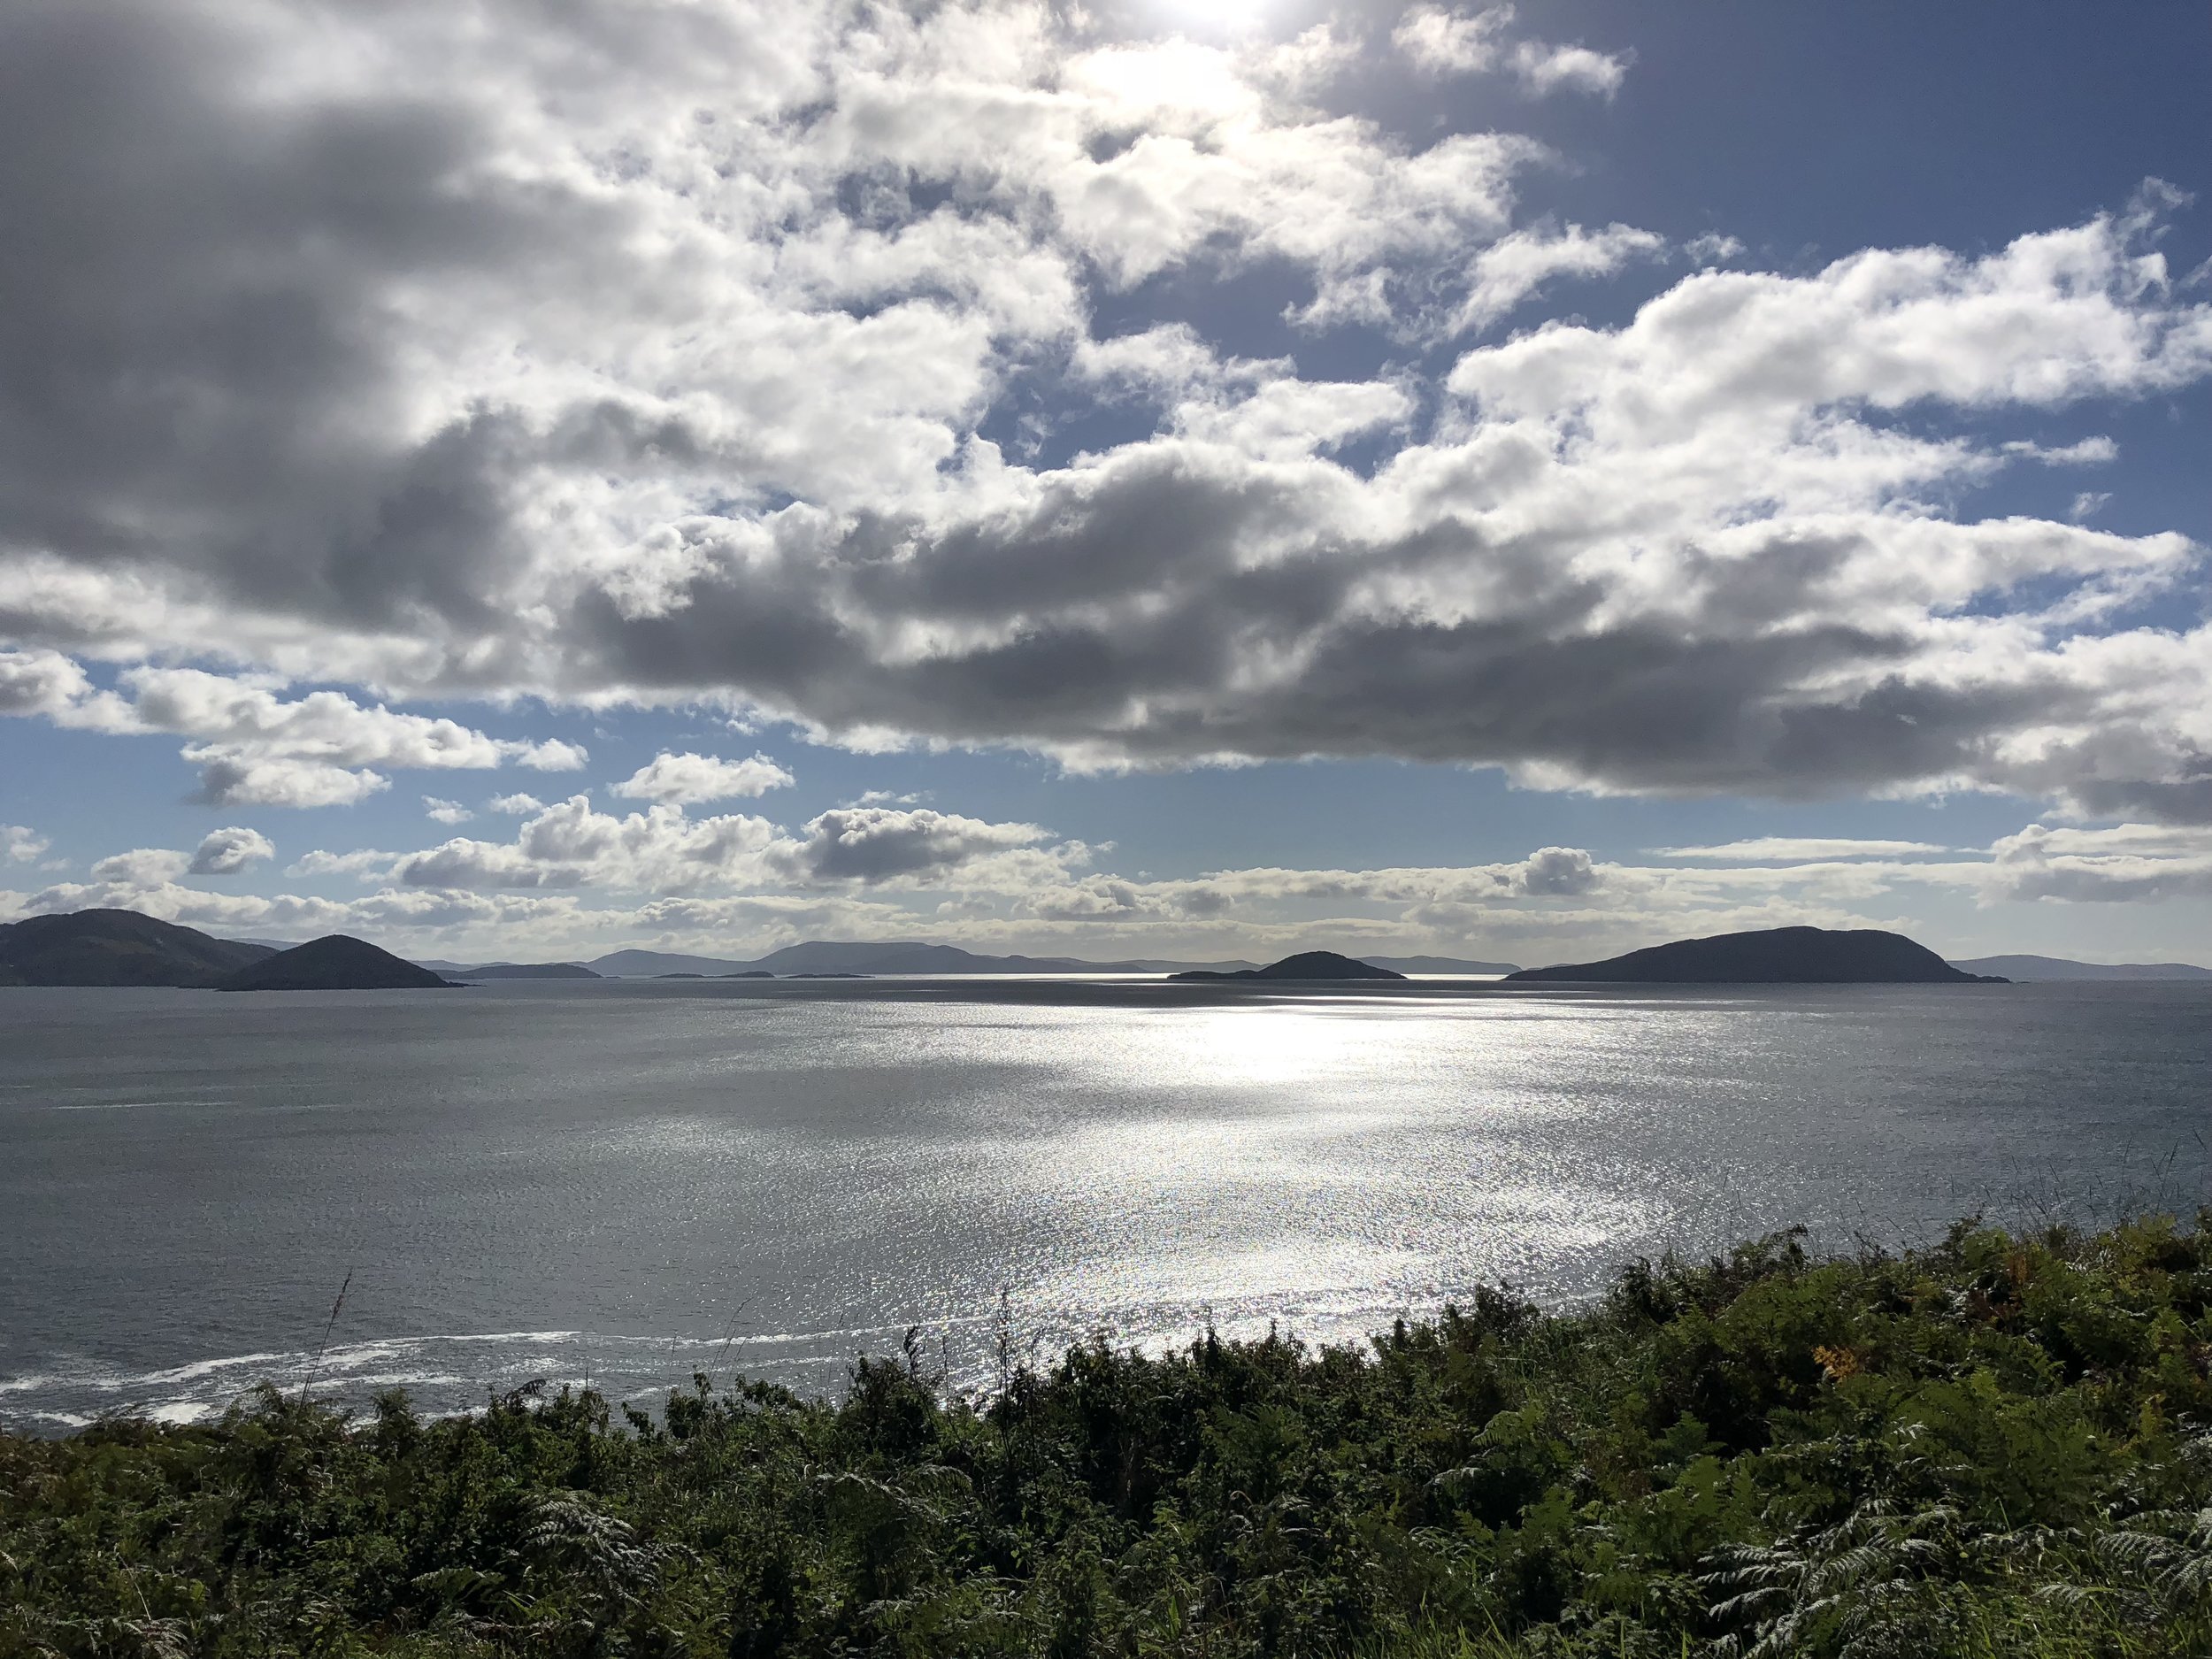 The morning light on Ballinskelligs Bay - view from my cottage.